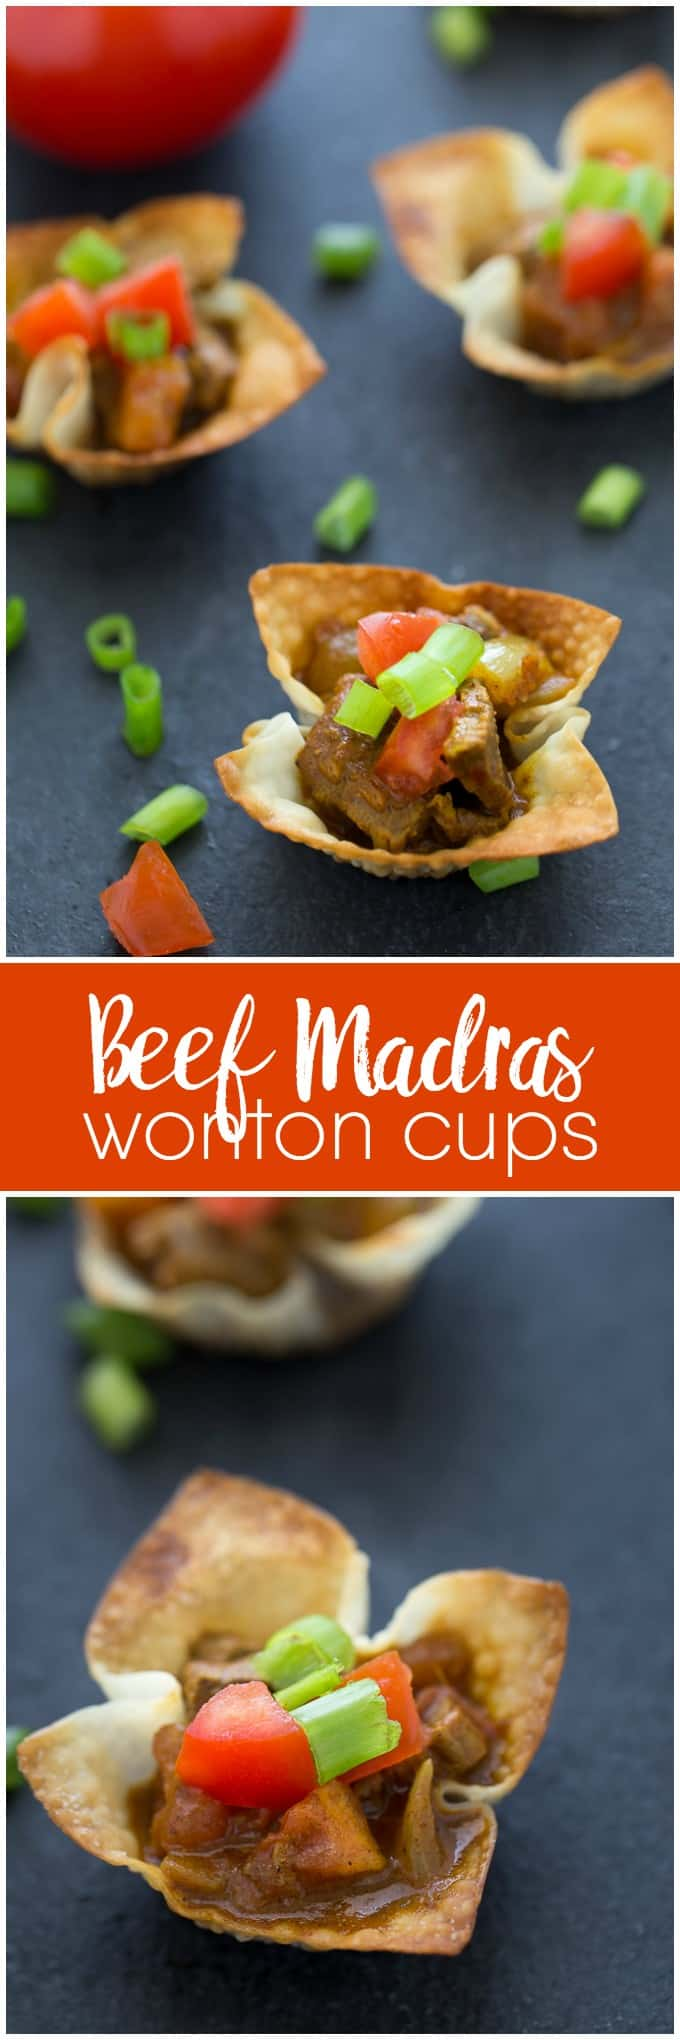 Beef Madras Wonton Cups - This summer appetizer packs a mean punch of flavour!